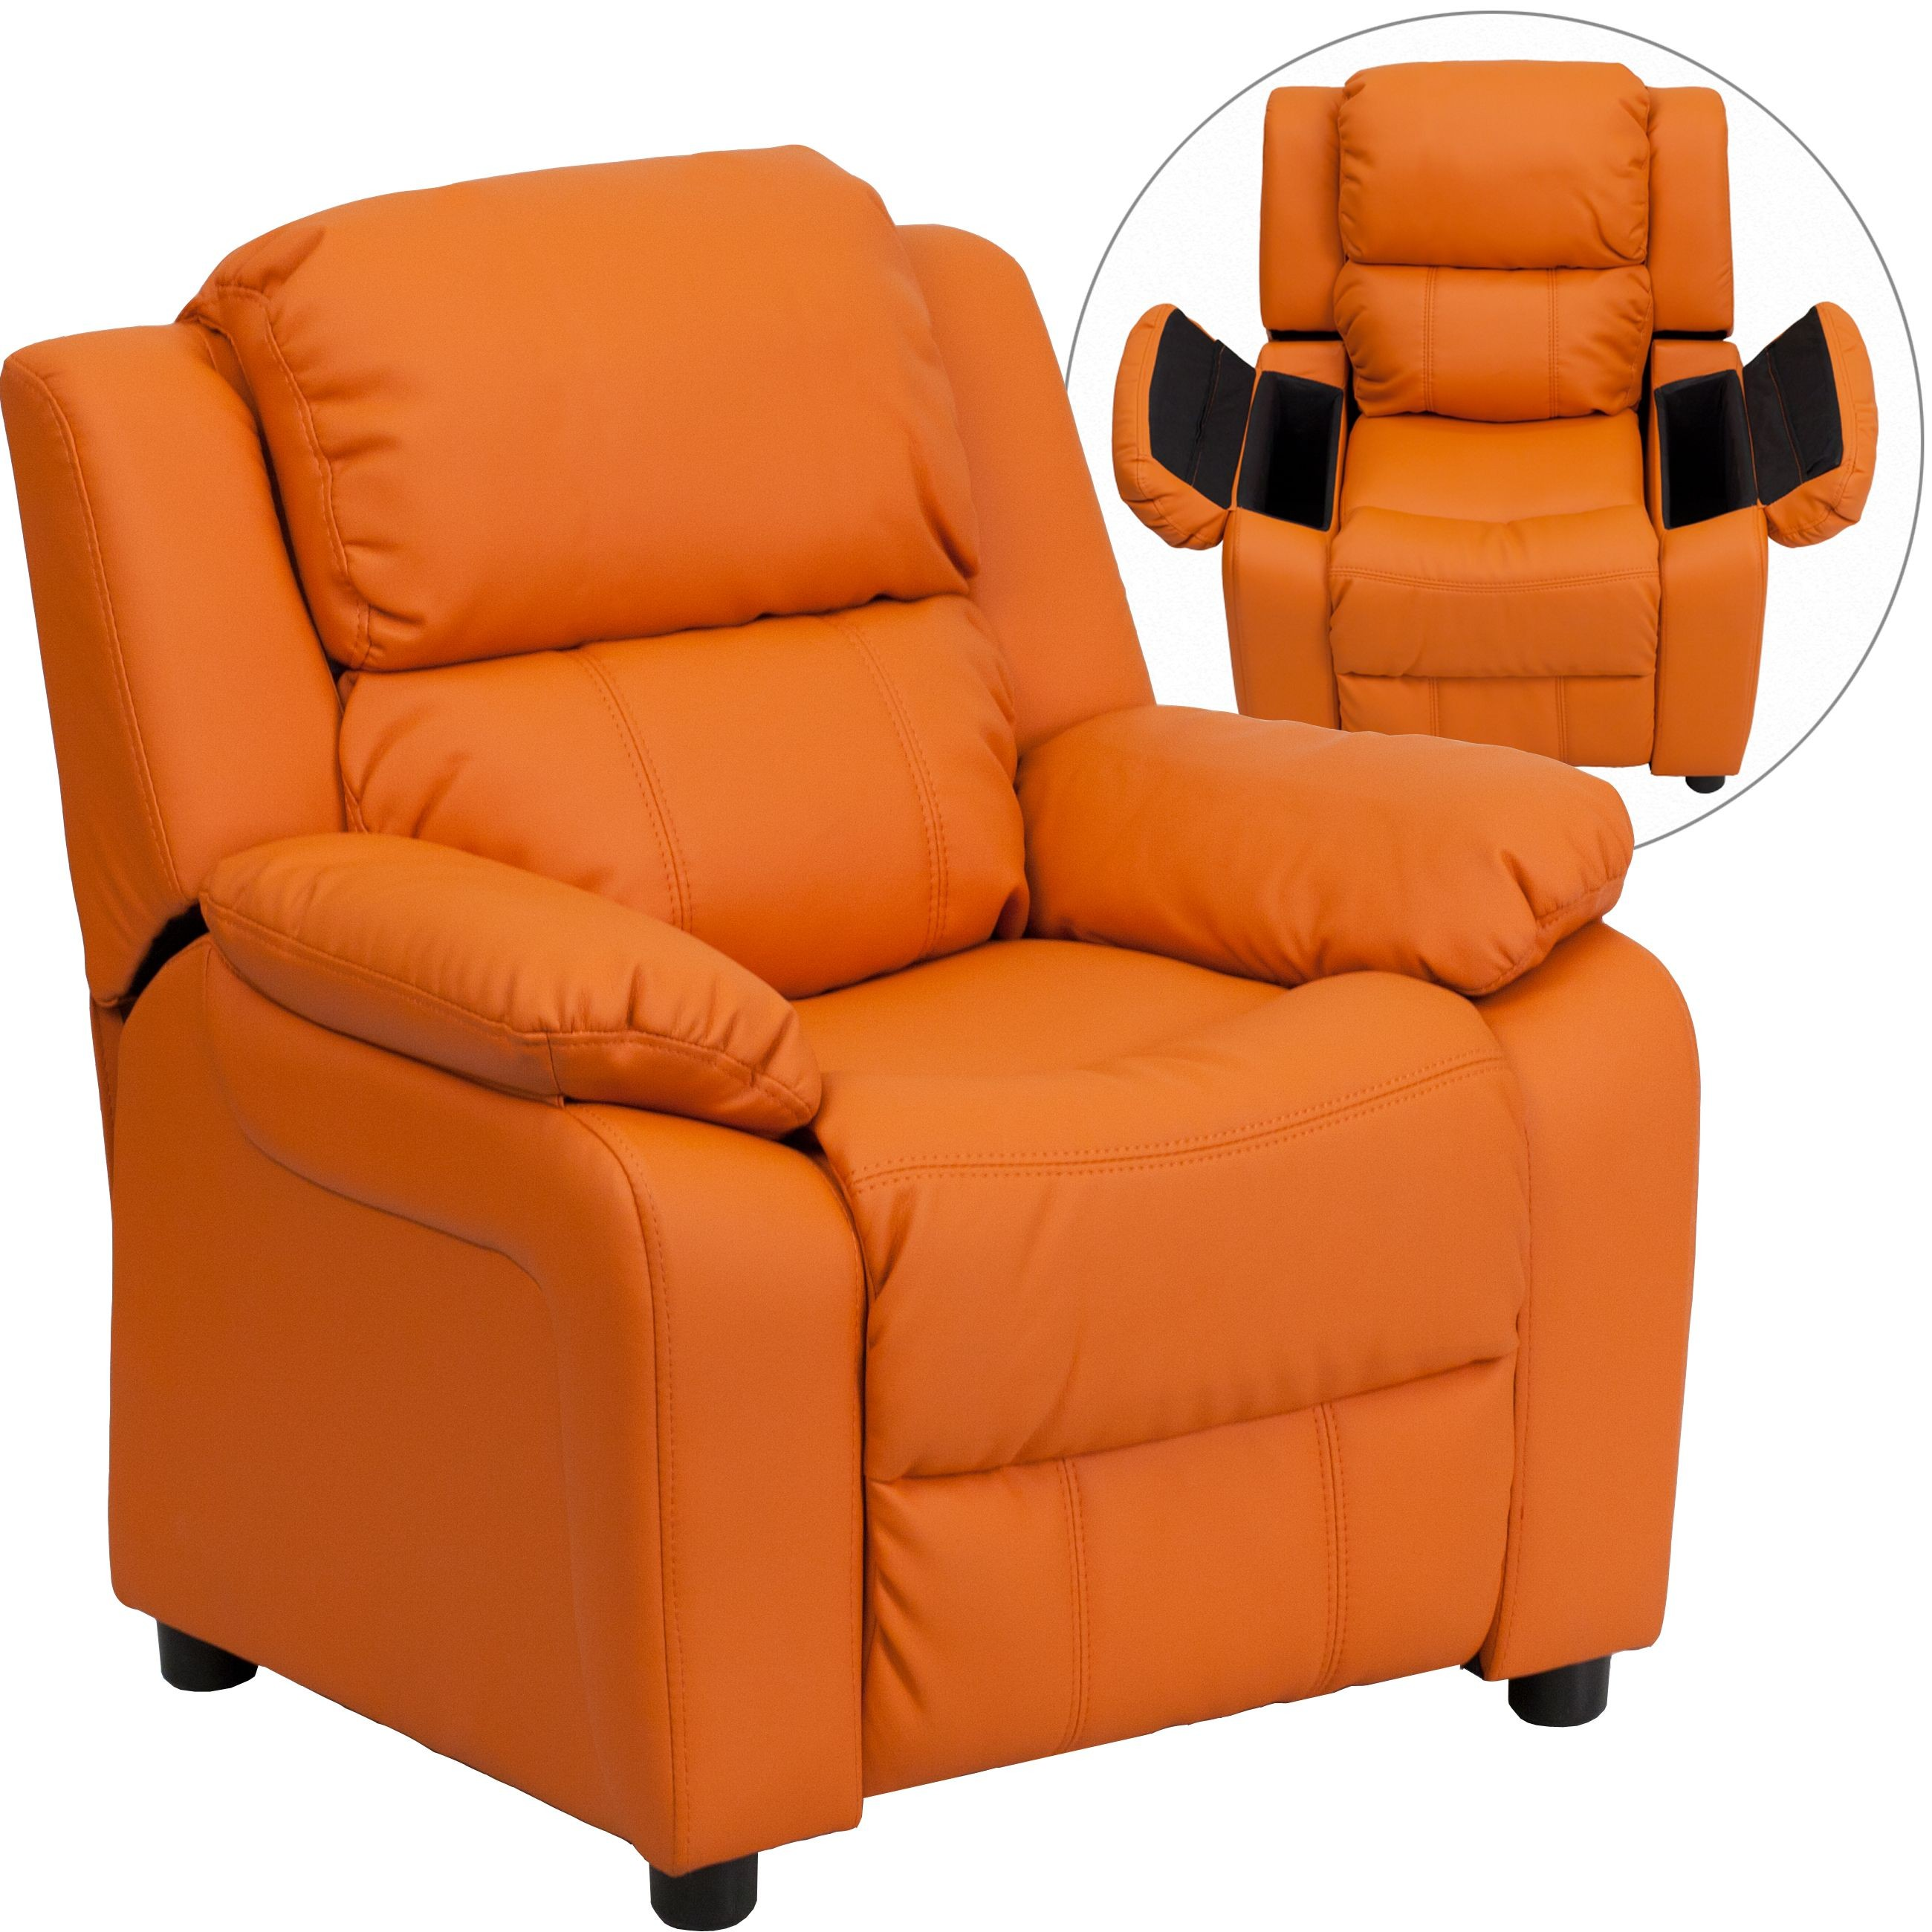 ... Recliner With Storage Arms. Personalize This! Flash Furniture  BT 7985 KID ORANGE GG Deluxe Heavily Padded Contemporary Orange